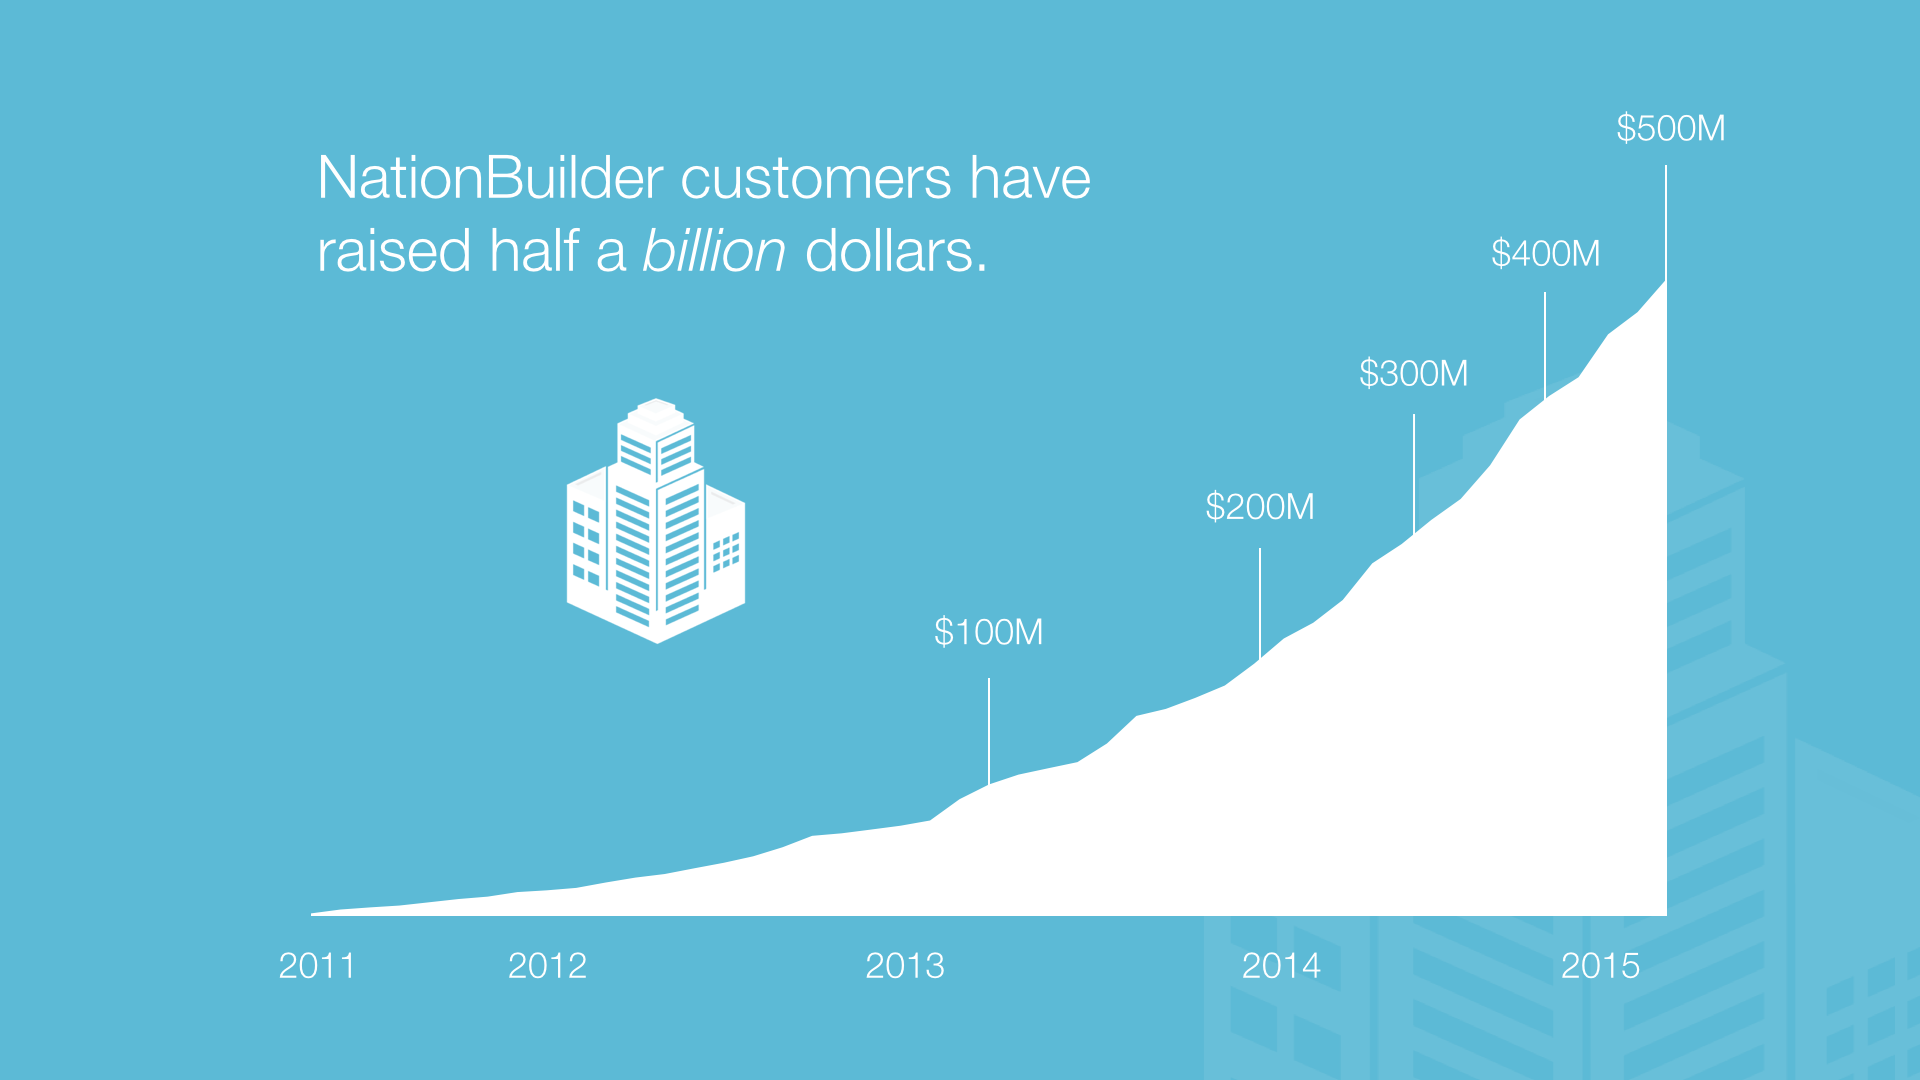 NationBuilder customers have raised half a billion dollars!